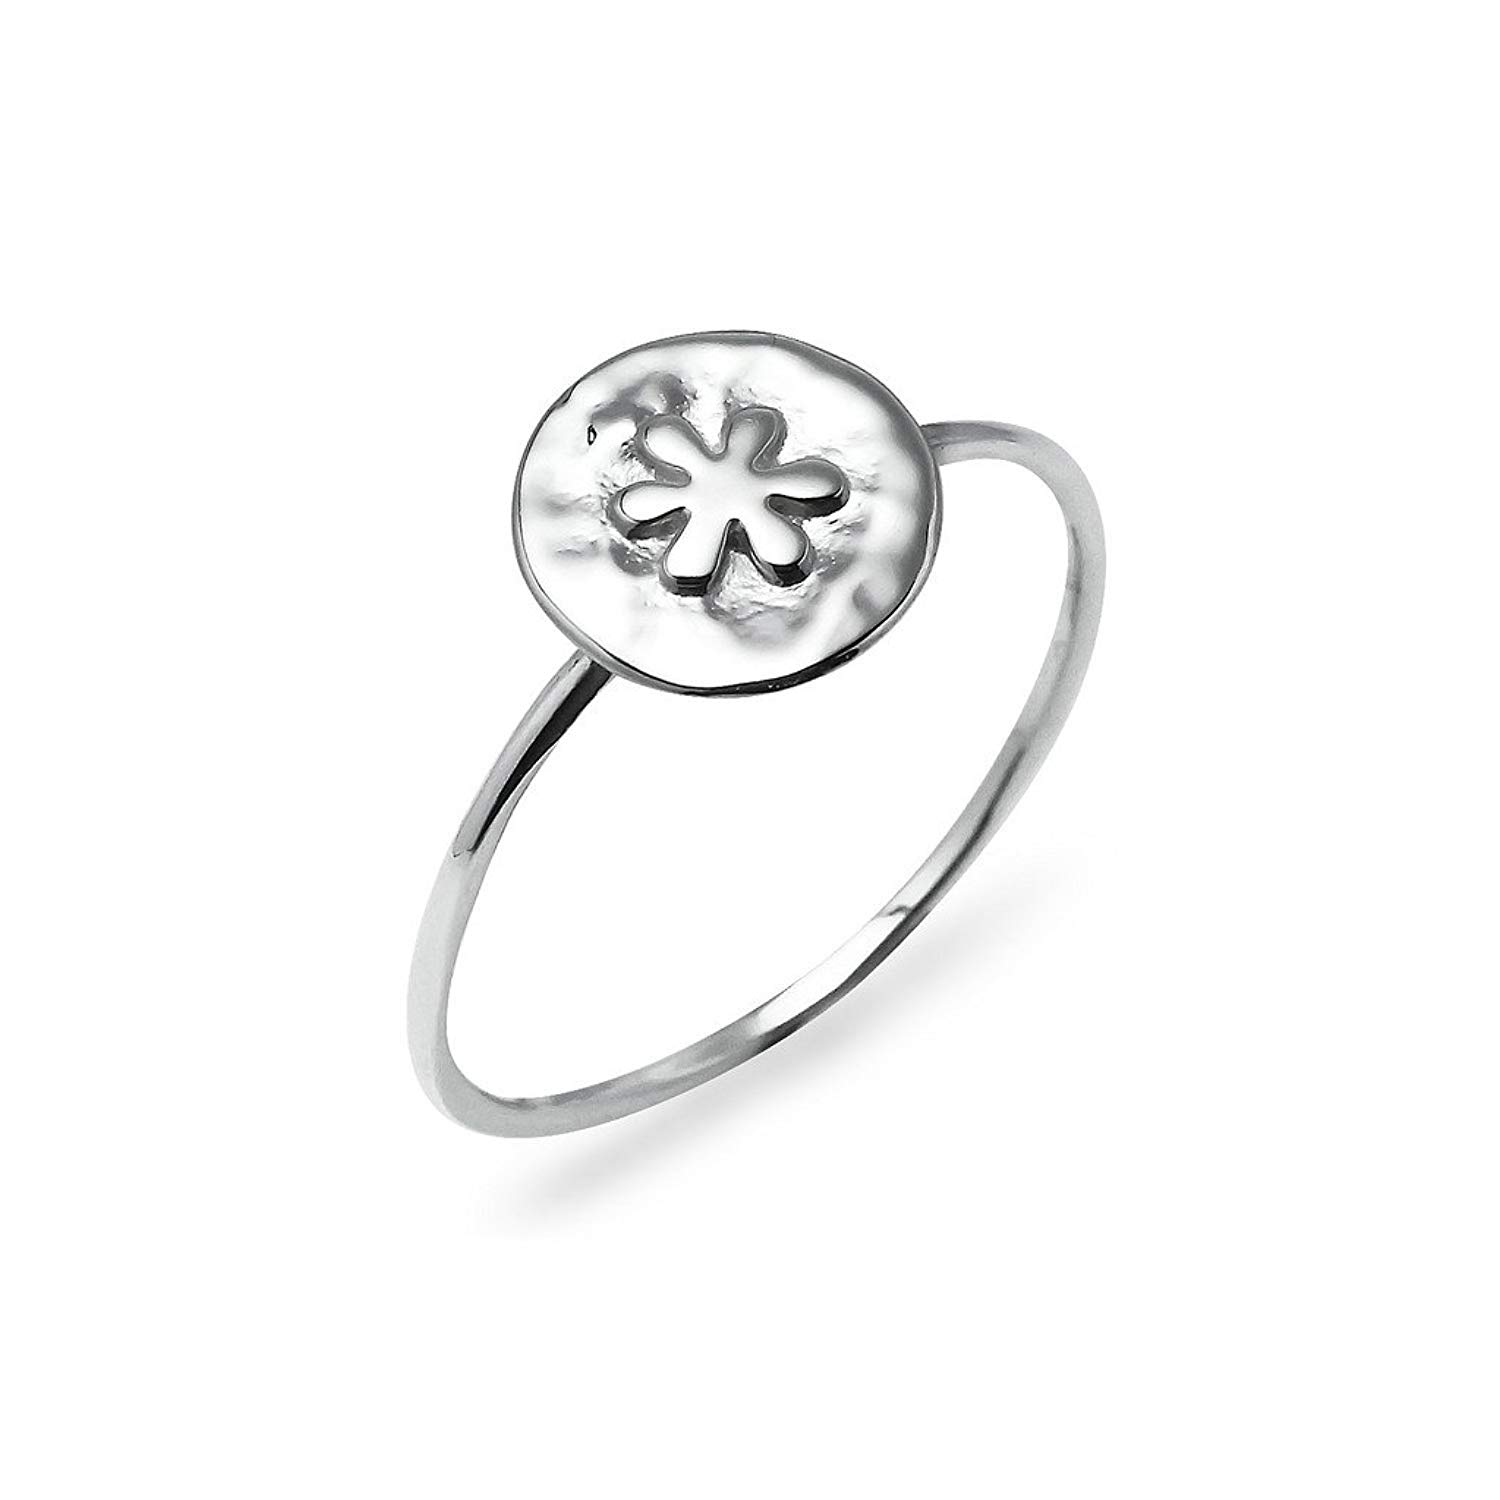 00e3d06ea Daisy Flower Charm Band Ring - Sterling Silver Promise Jewelry Sizes 5 to 10